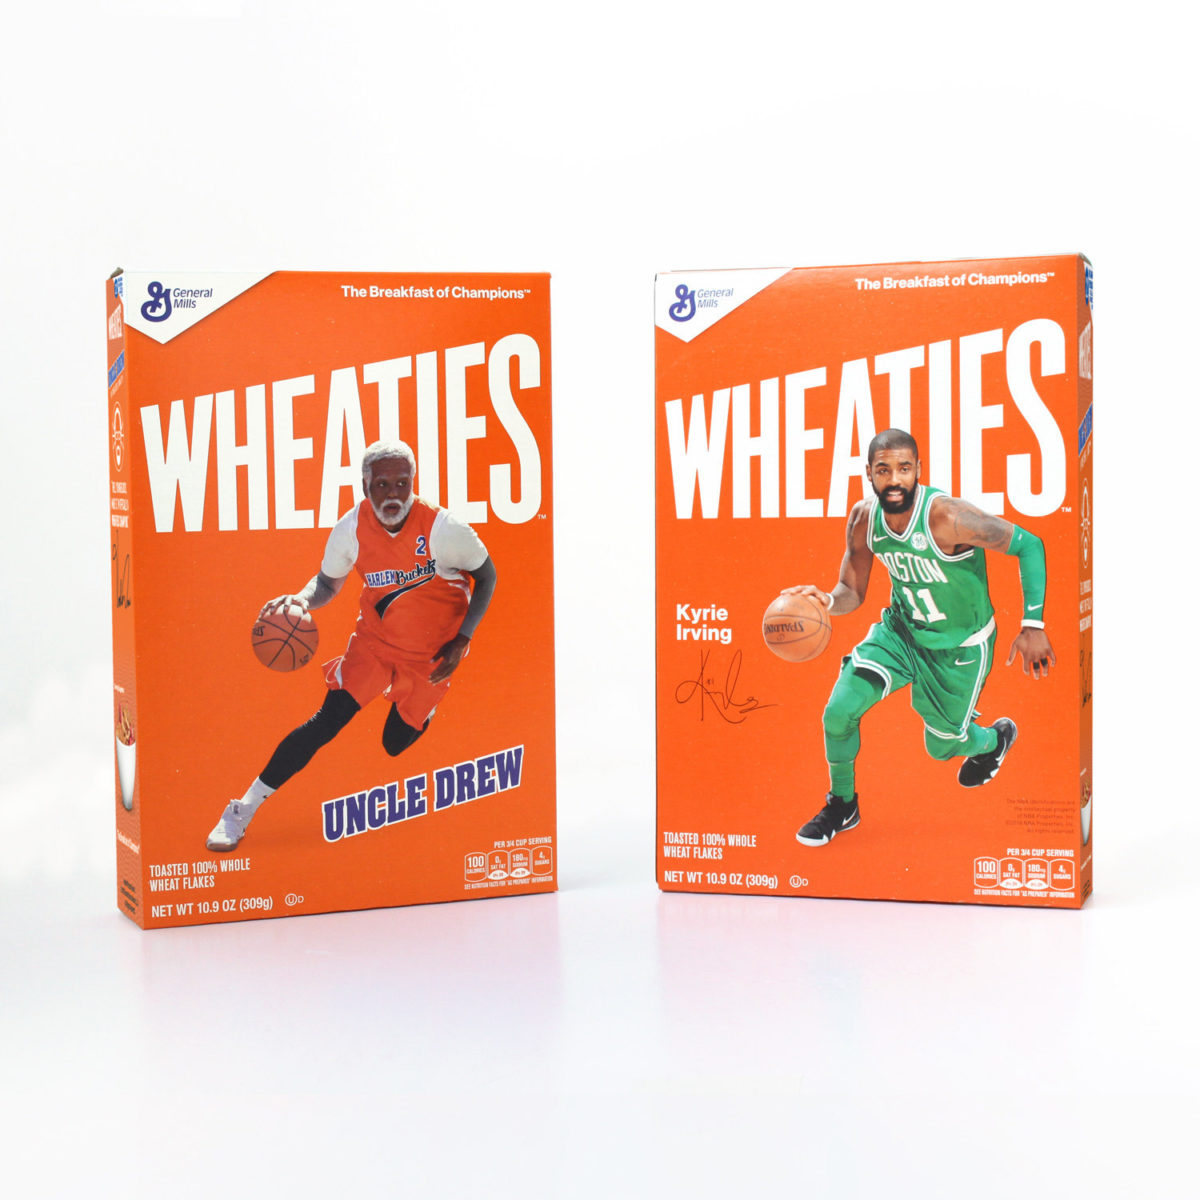 Wheaties Bowing Cereal Box for New Lionsgate Movie